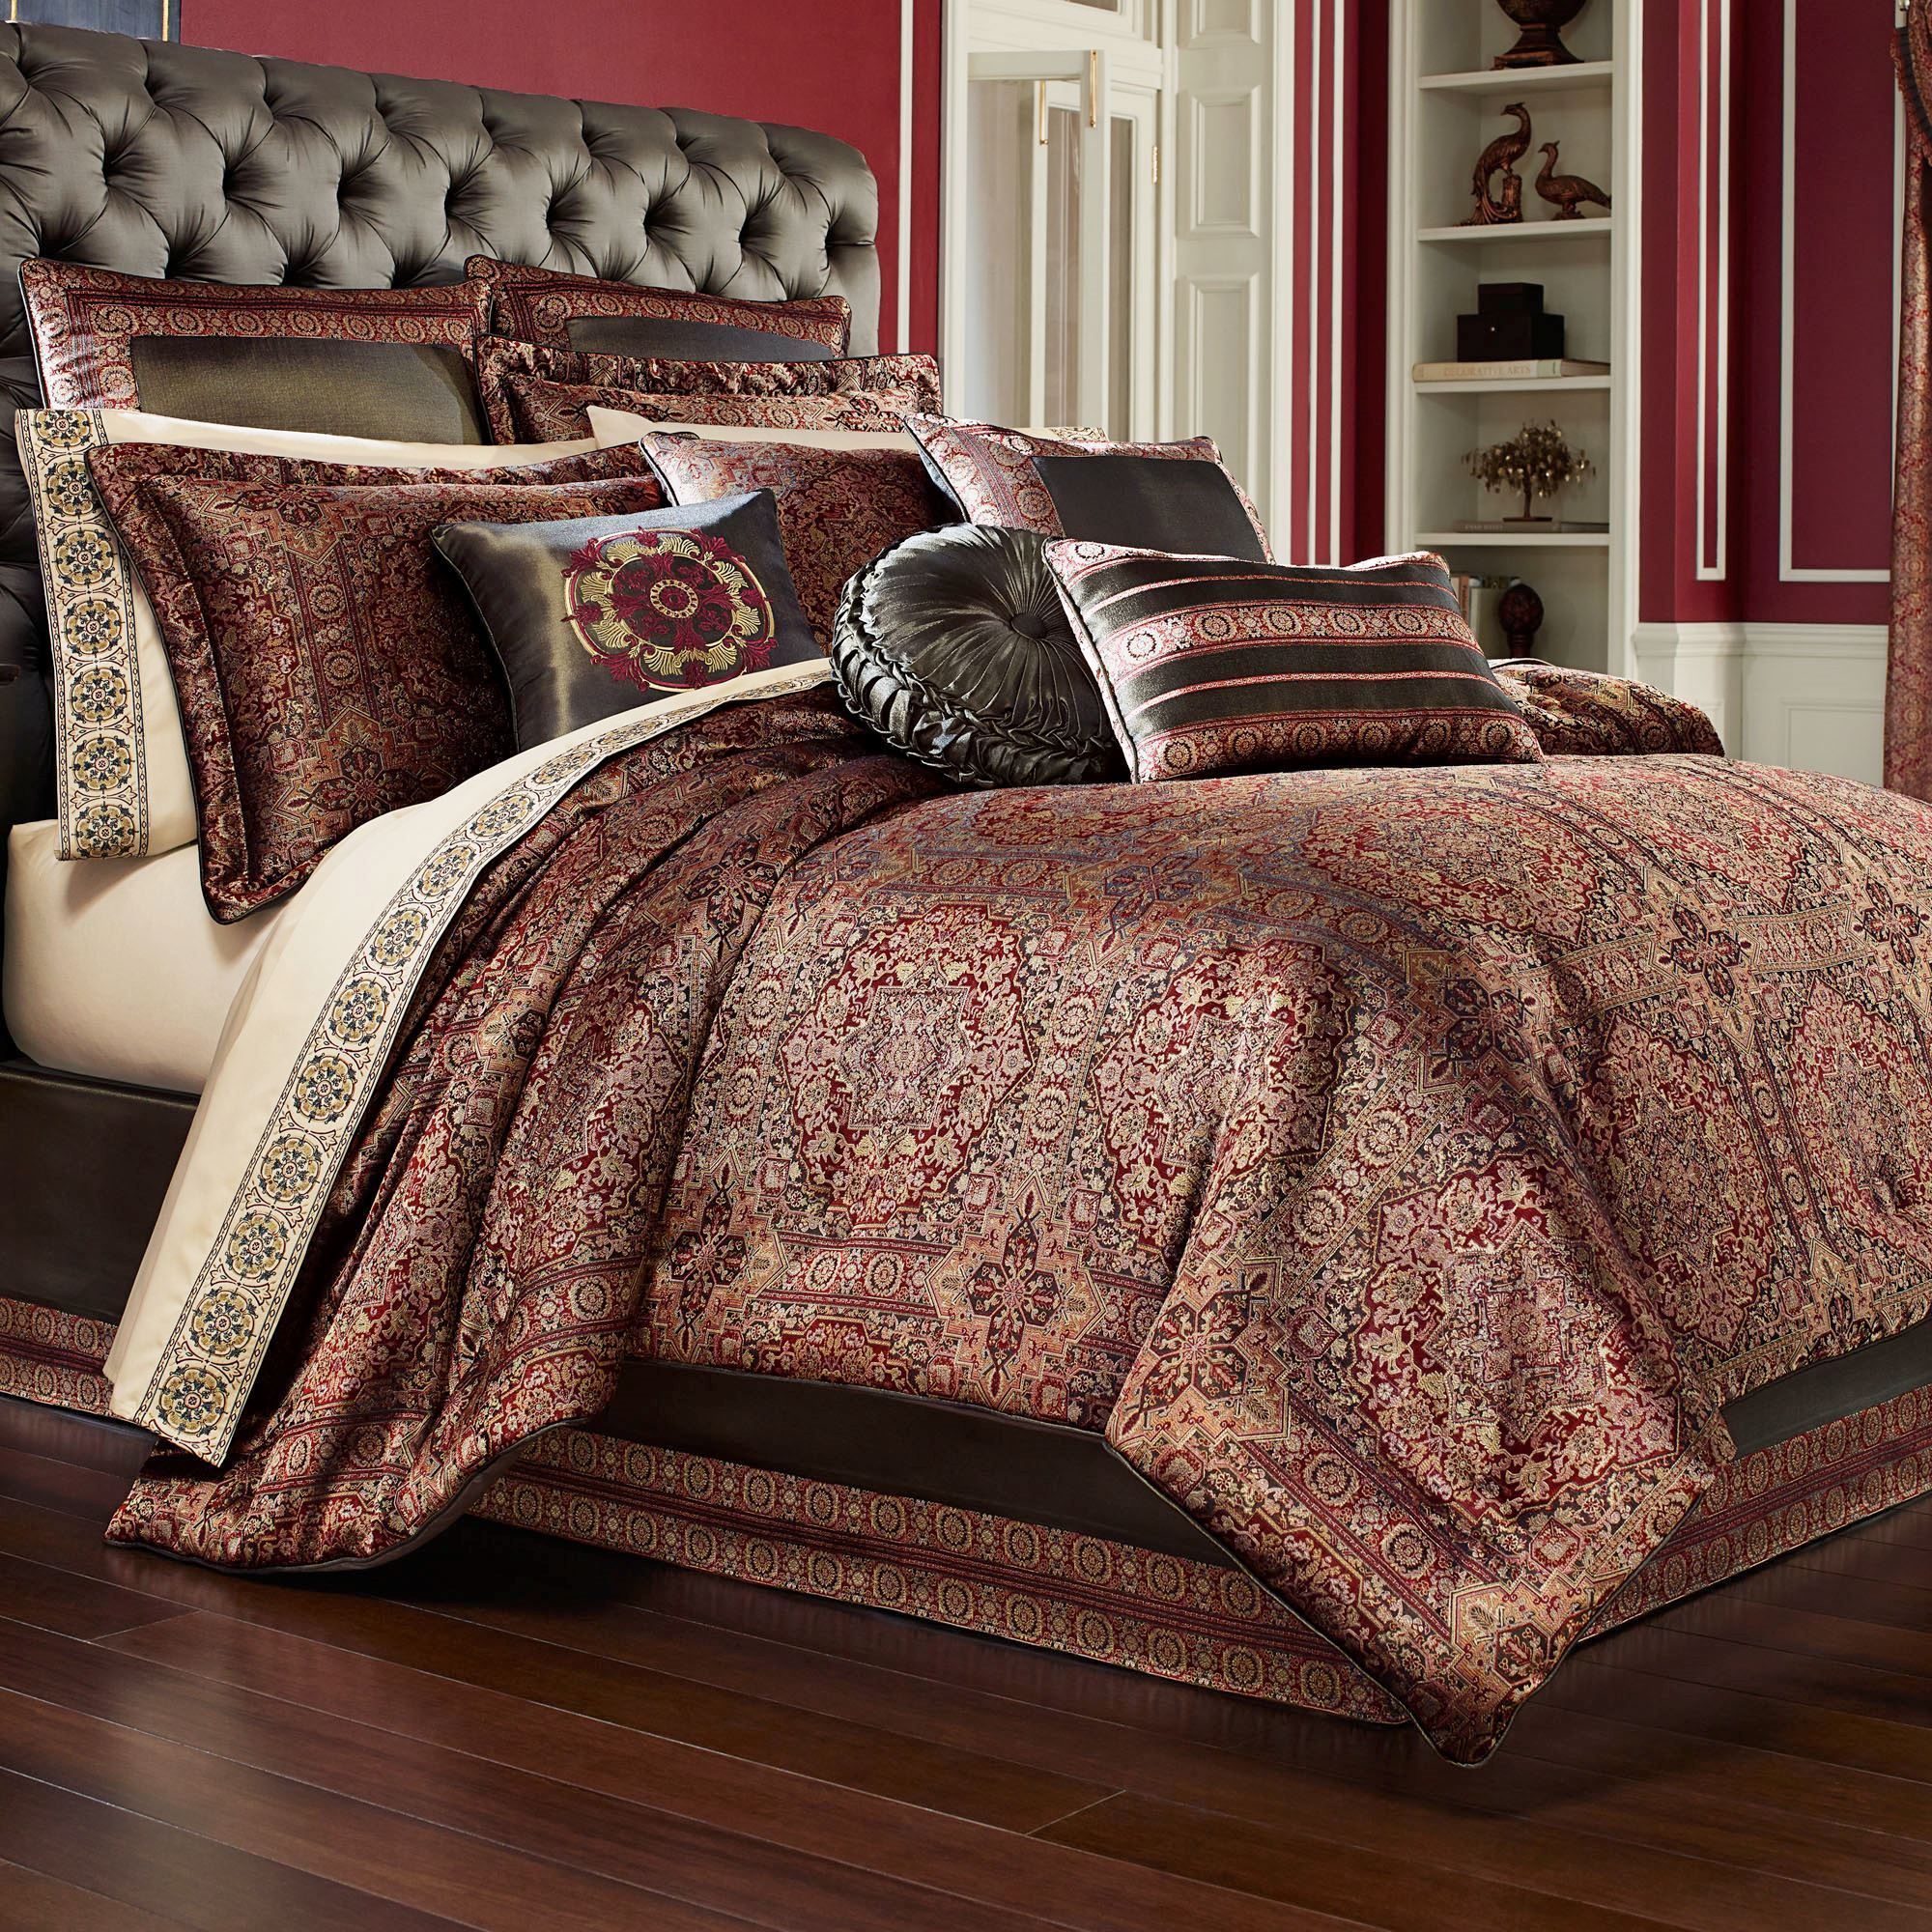 Bridgeport Red Comforter Set Burgundy Luxurybeddingred Comforter Sets Luxury Comforter Sets Burgundy Bedding